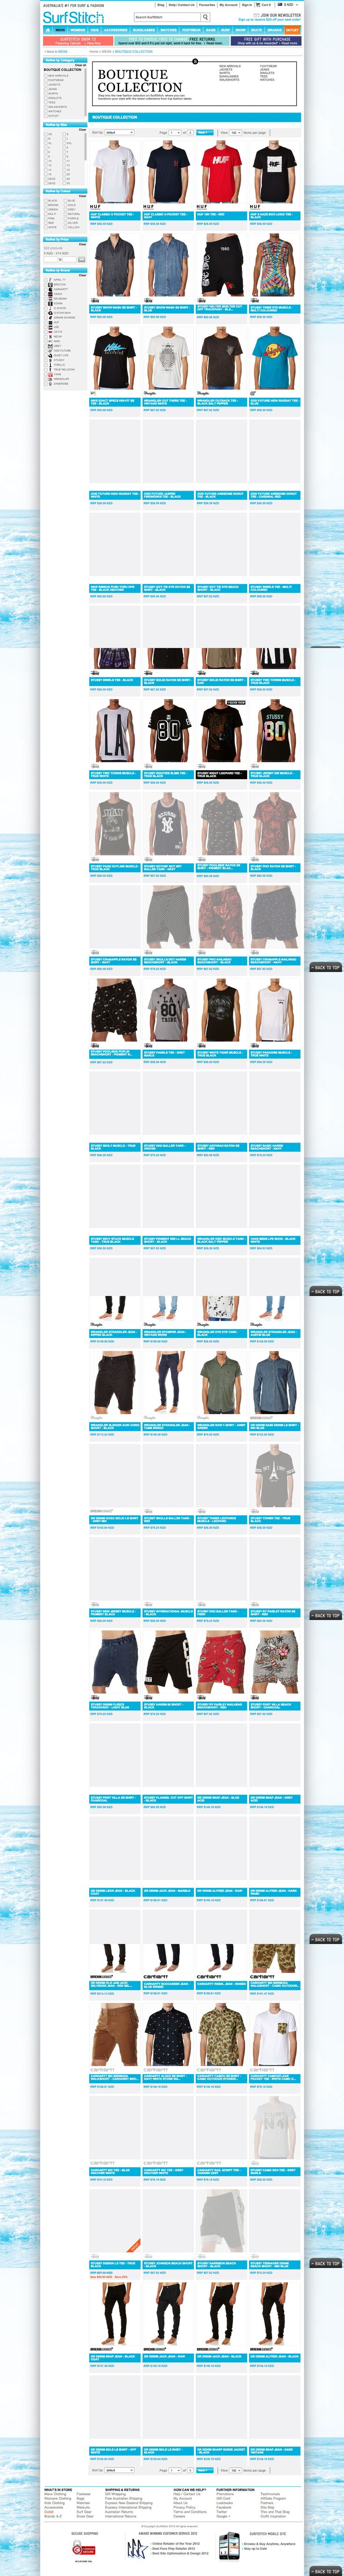 http://www.surfstitch.com/category/mens-clothing/mens-designer-collection/mens-designer-collection